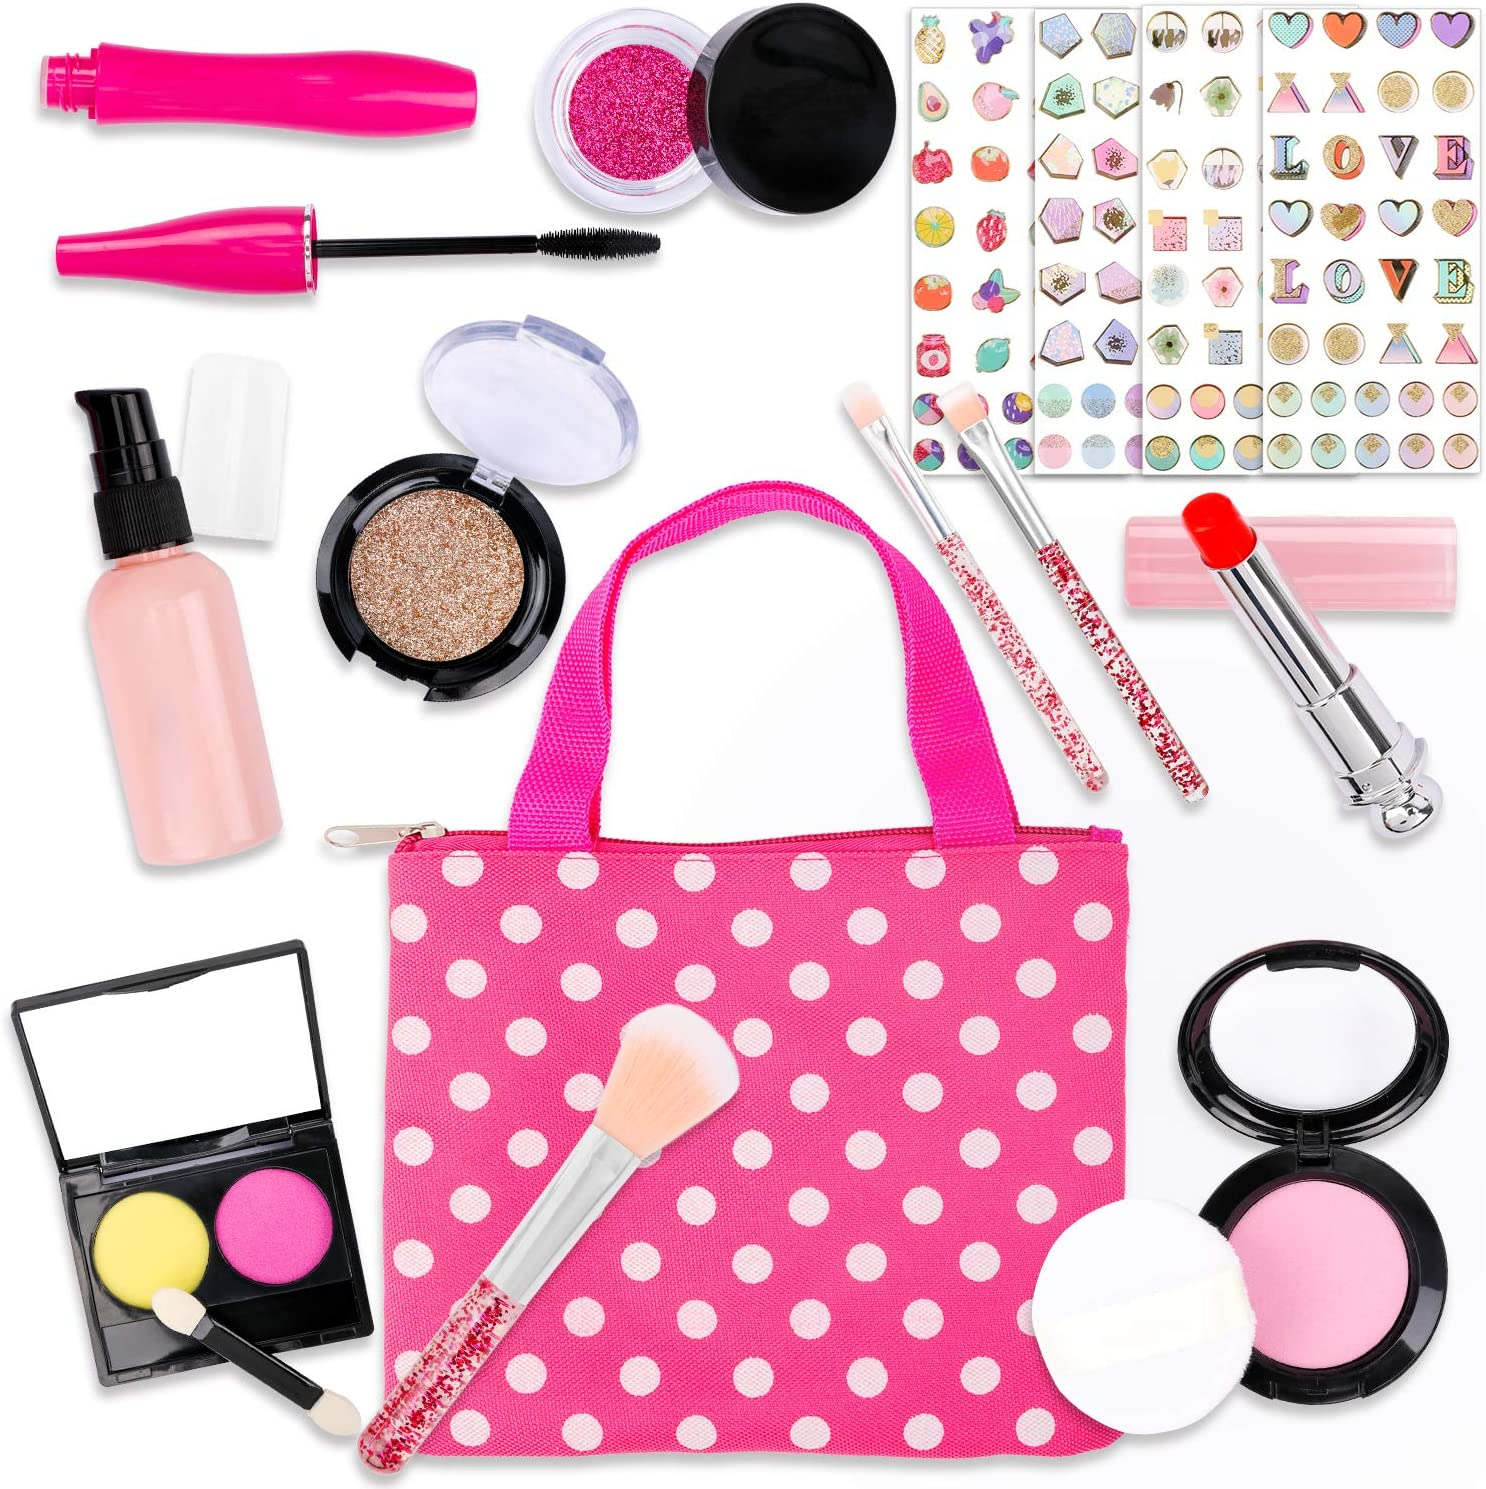 Konsait 17 Piece Pretend Play Makeup Kit for Toddlers Little Girls and Kids with Polka Dot Handbag Pretend Play Makeup Toys for Birthday Christmas New Year Valentine Gift (Not Real )